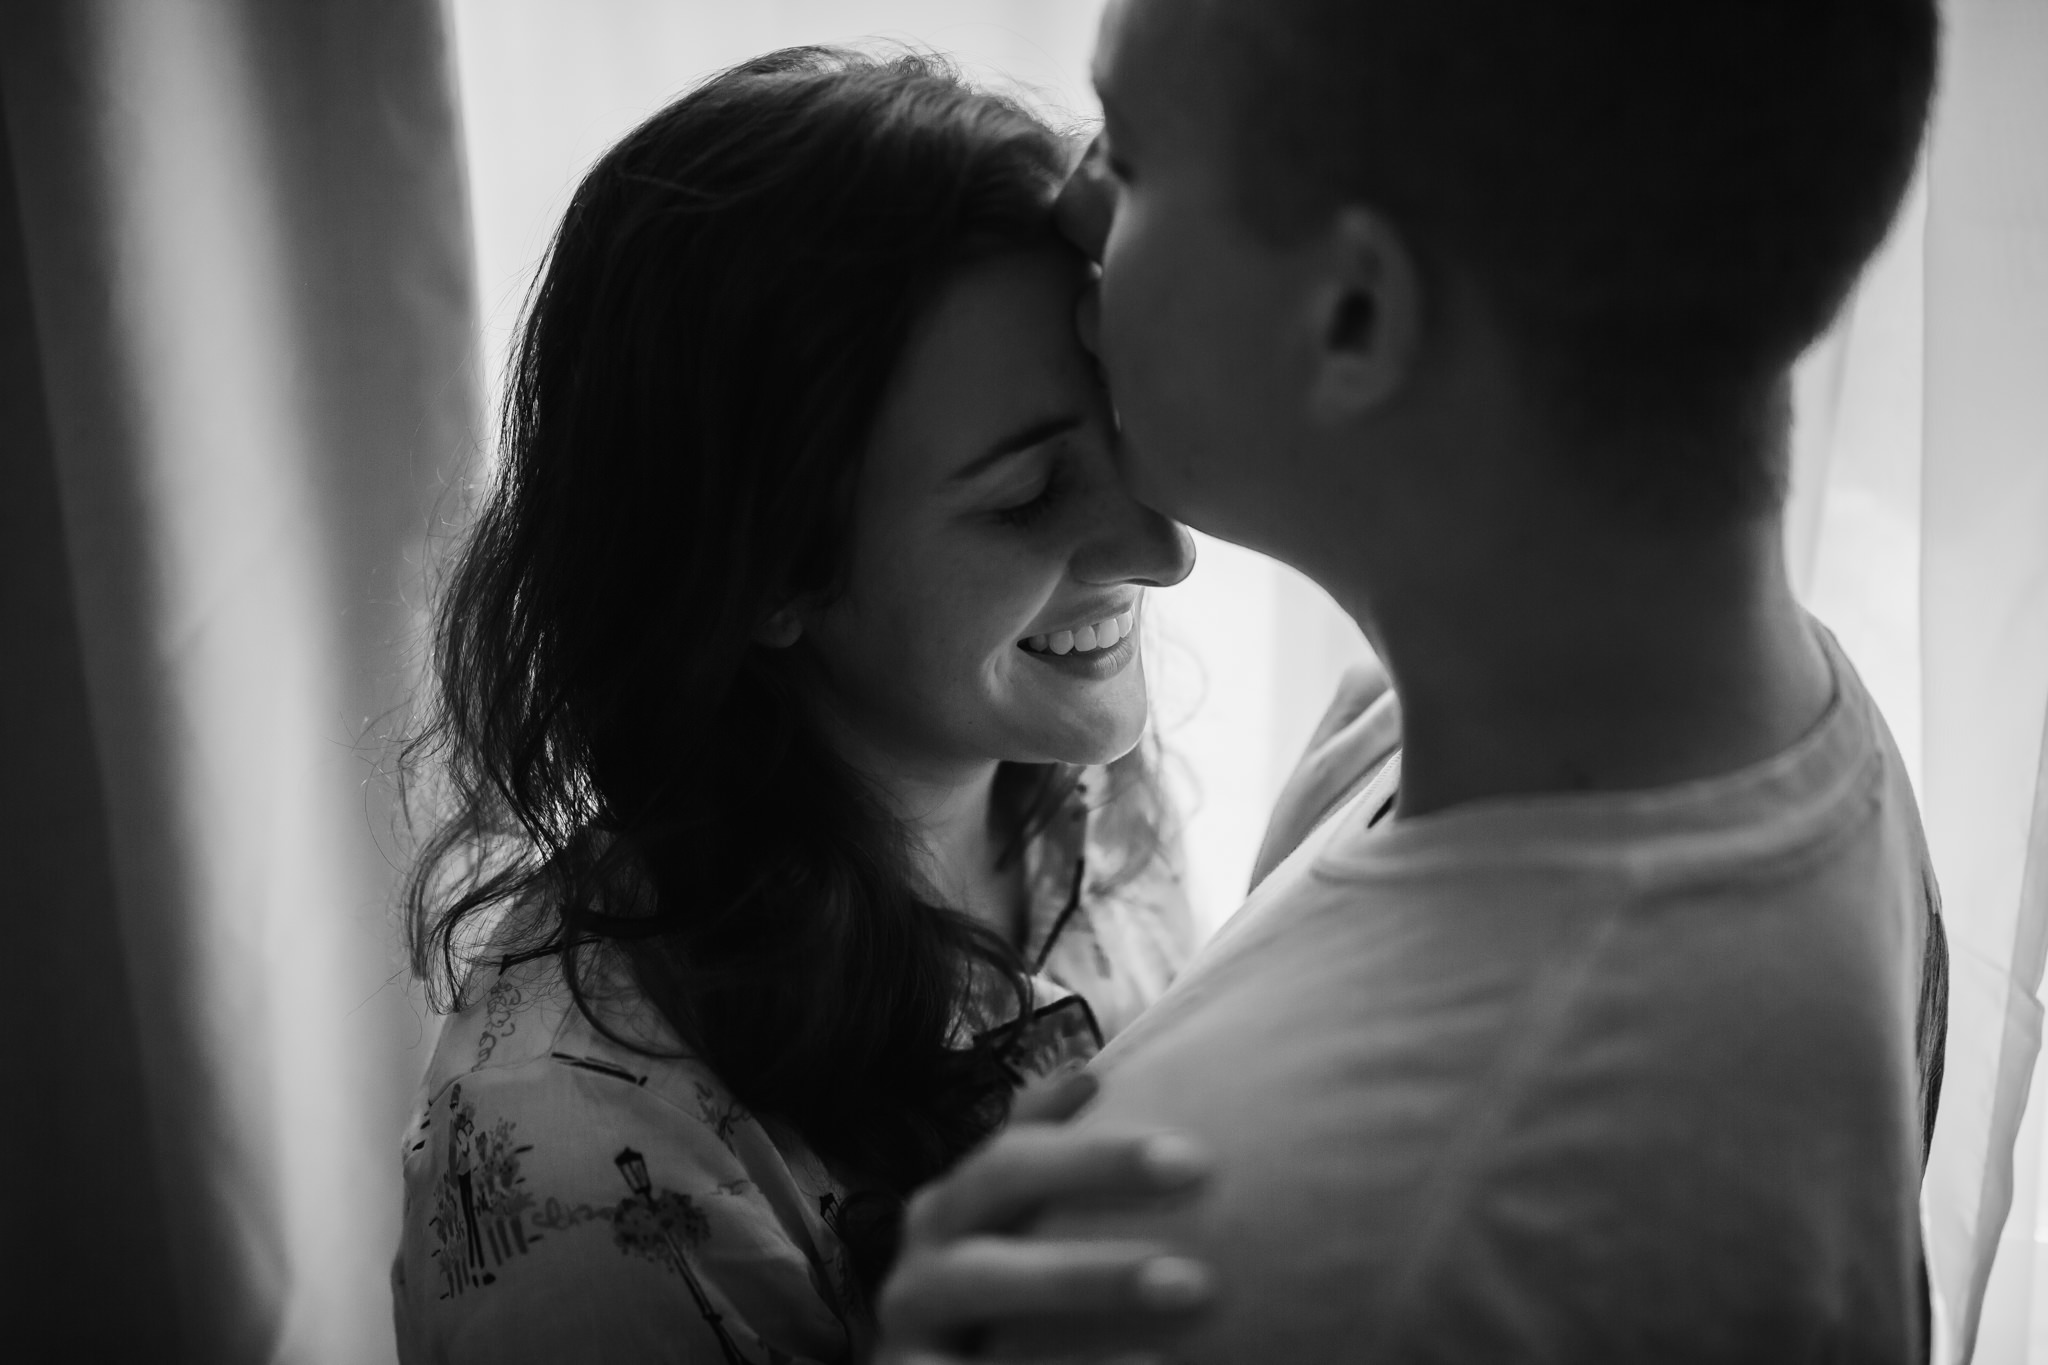 in-home-session-newlyweds-cassie-cook-photography-rosemary-beach-39.jpg